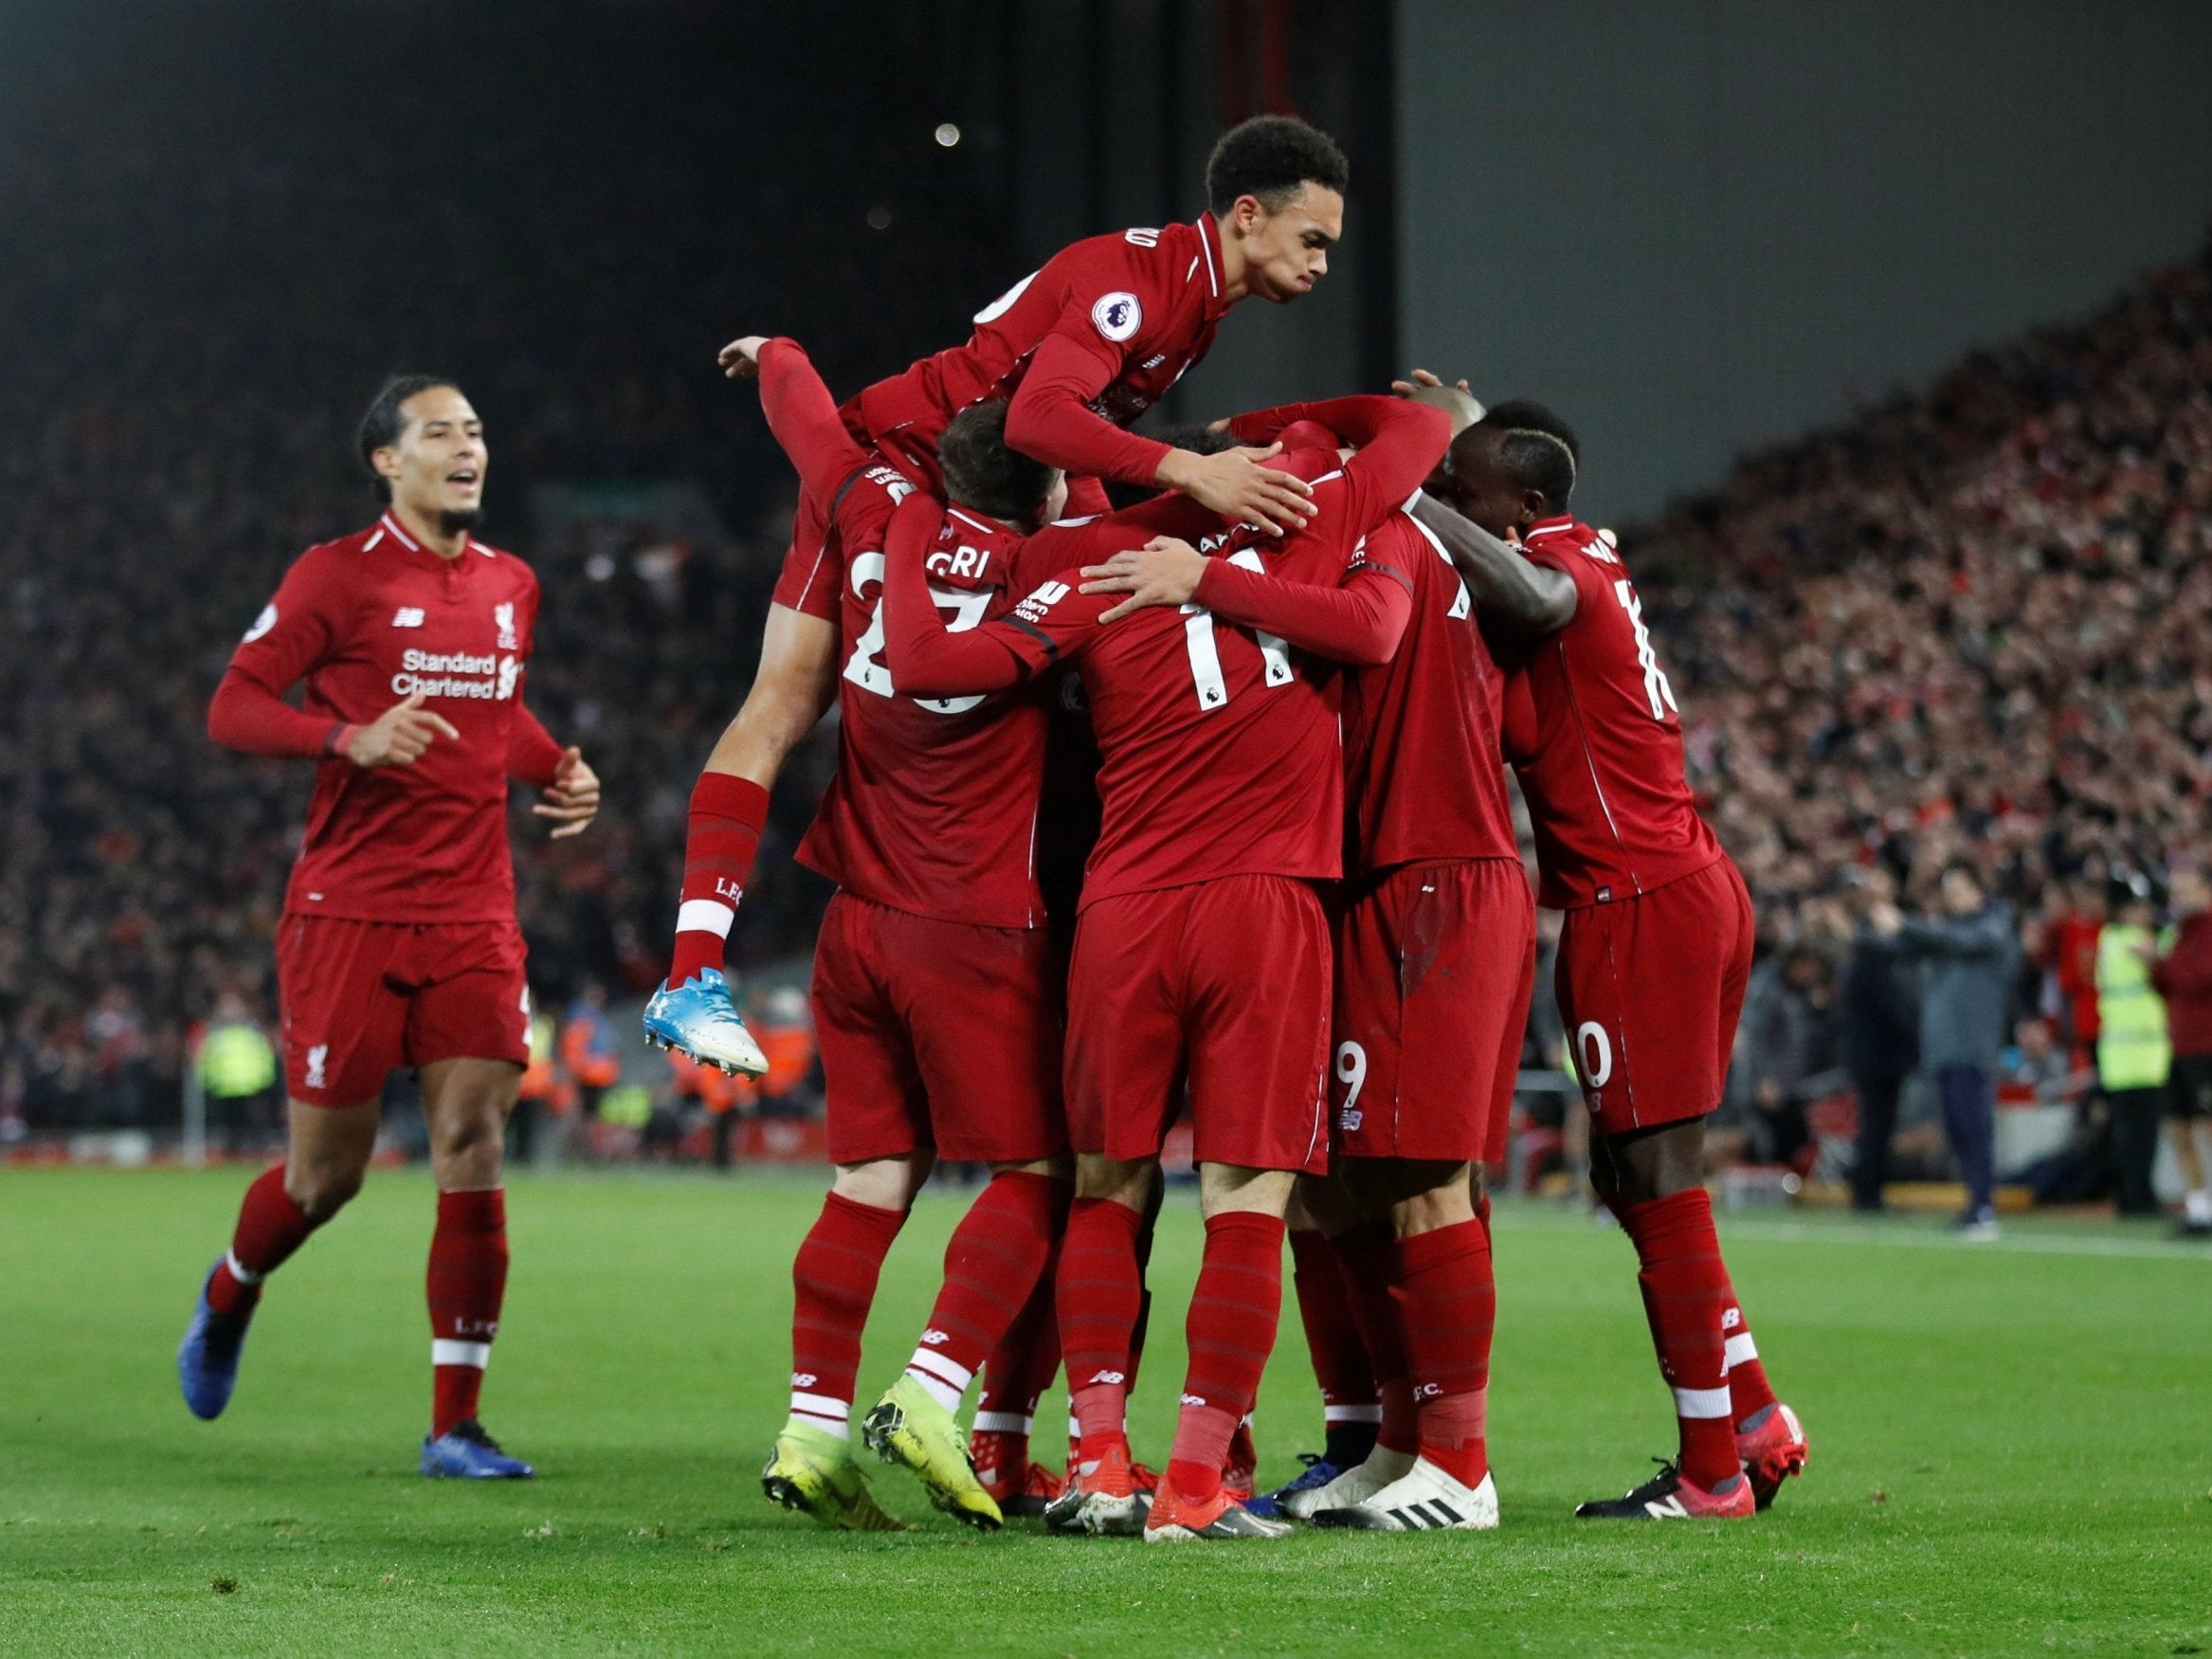 Liverpool Vs Arsenal Winning This Title Could Take Something Special But This Looks Like A Special Team The Independent The Independent